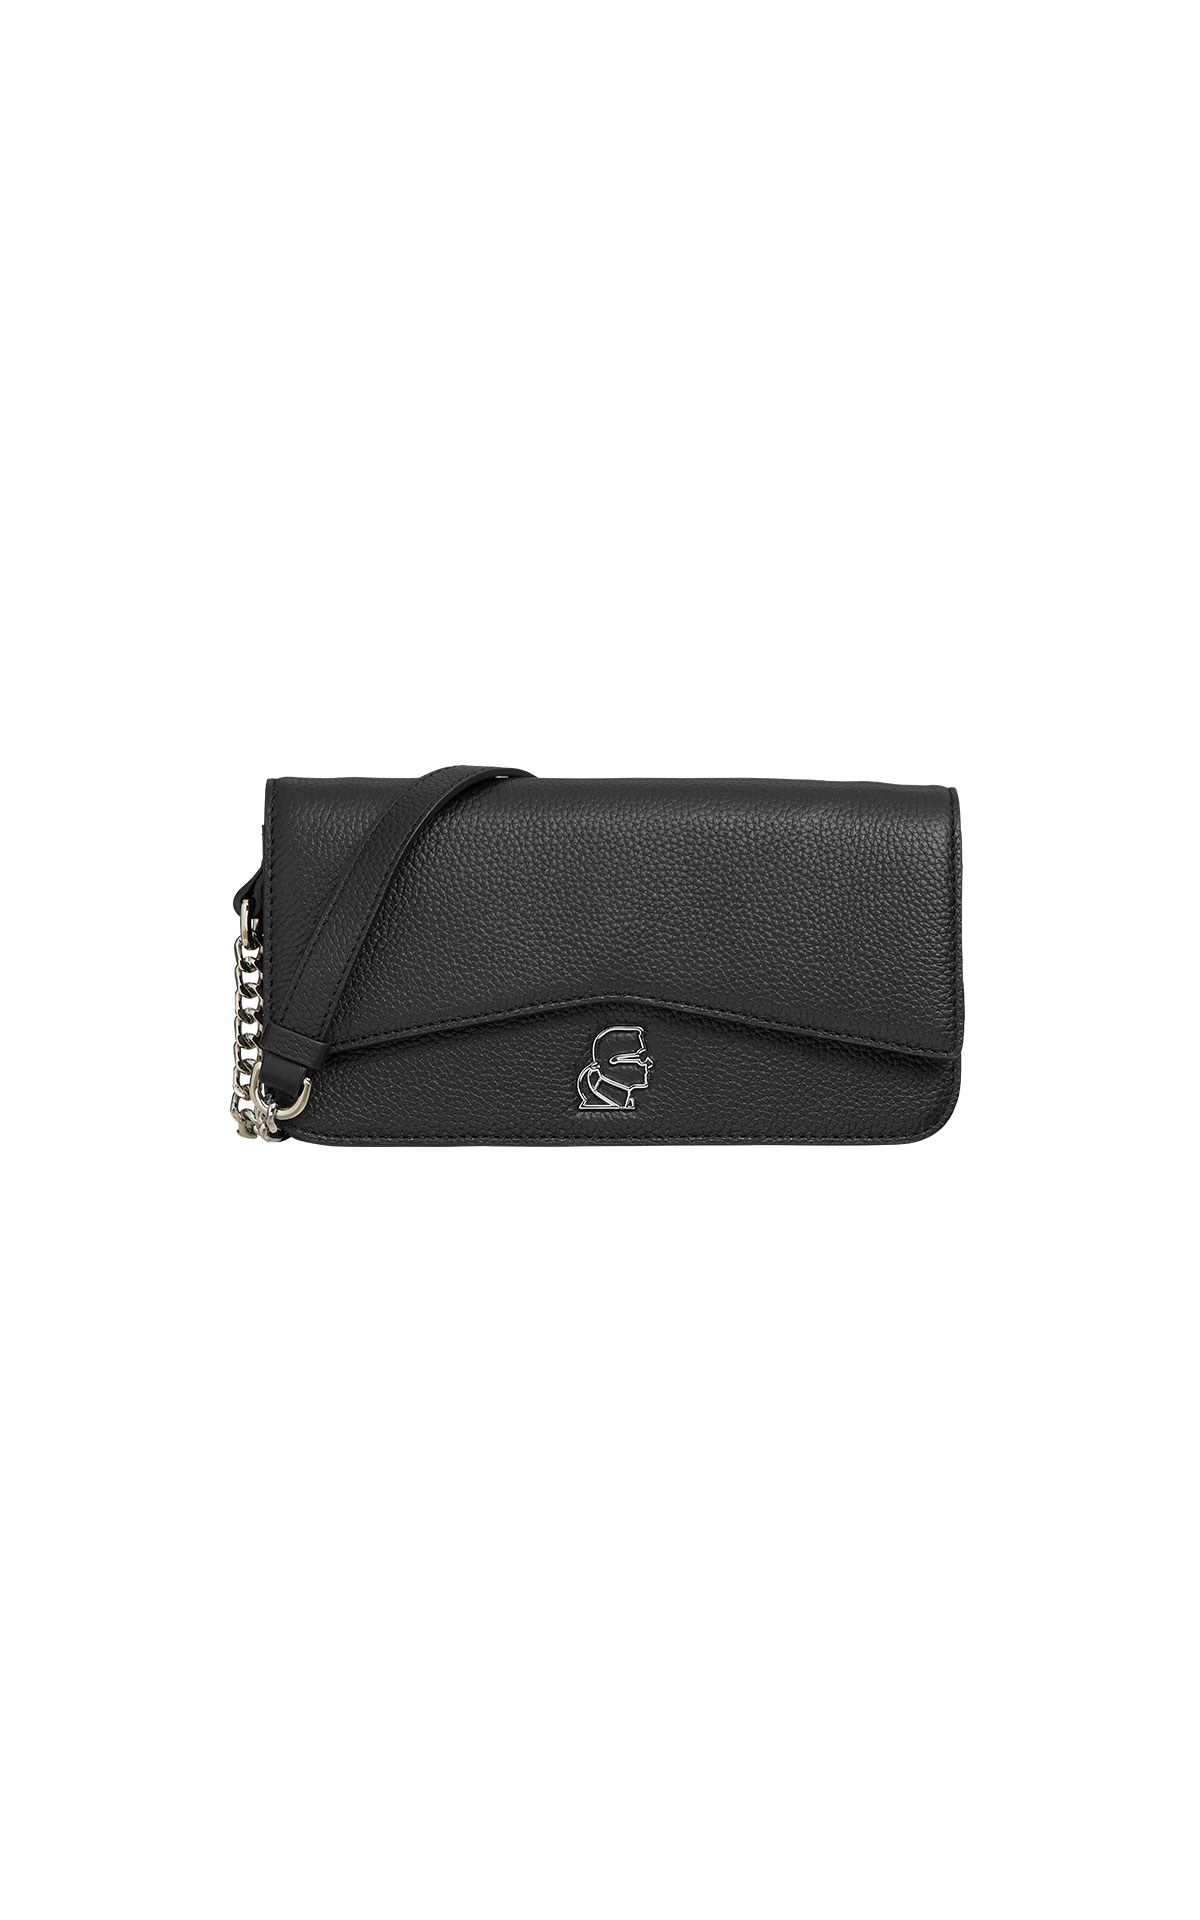 Karl Lagerfeld k/pebble evening clutch at The Bicester Village Shopping Collection